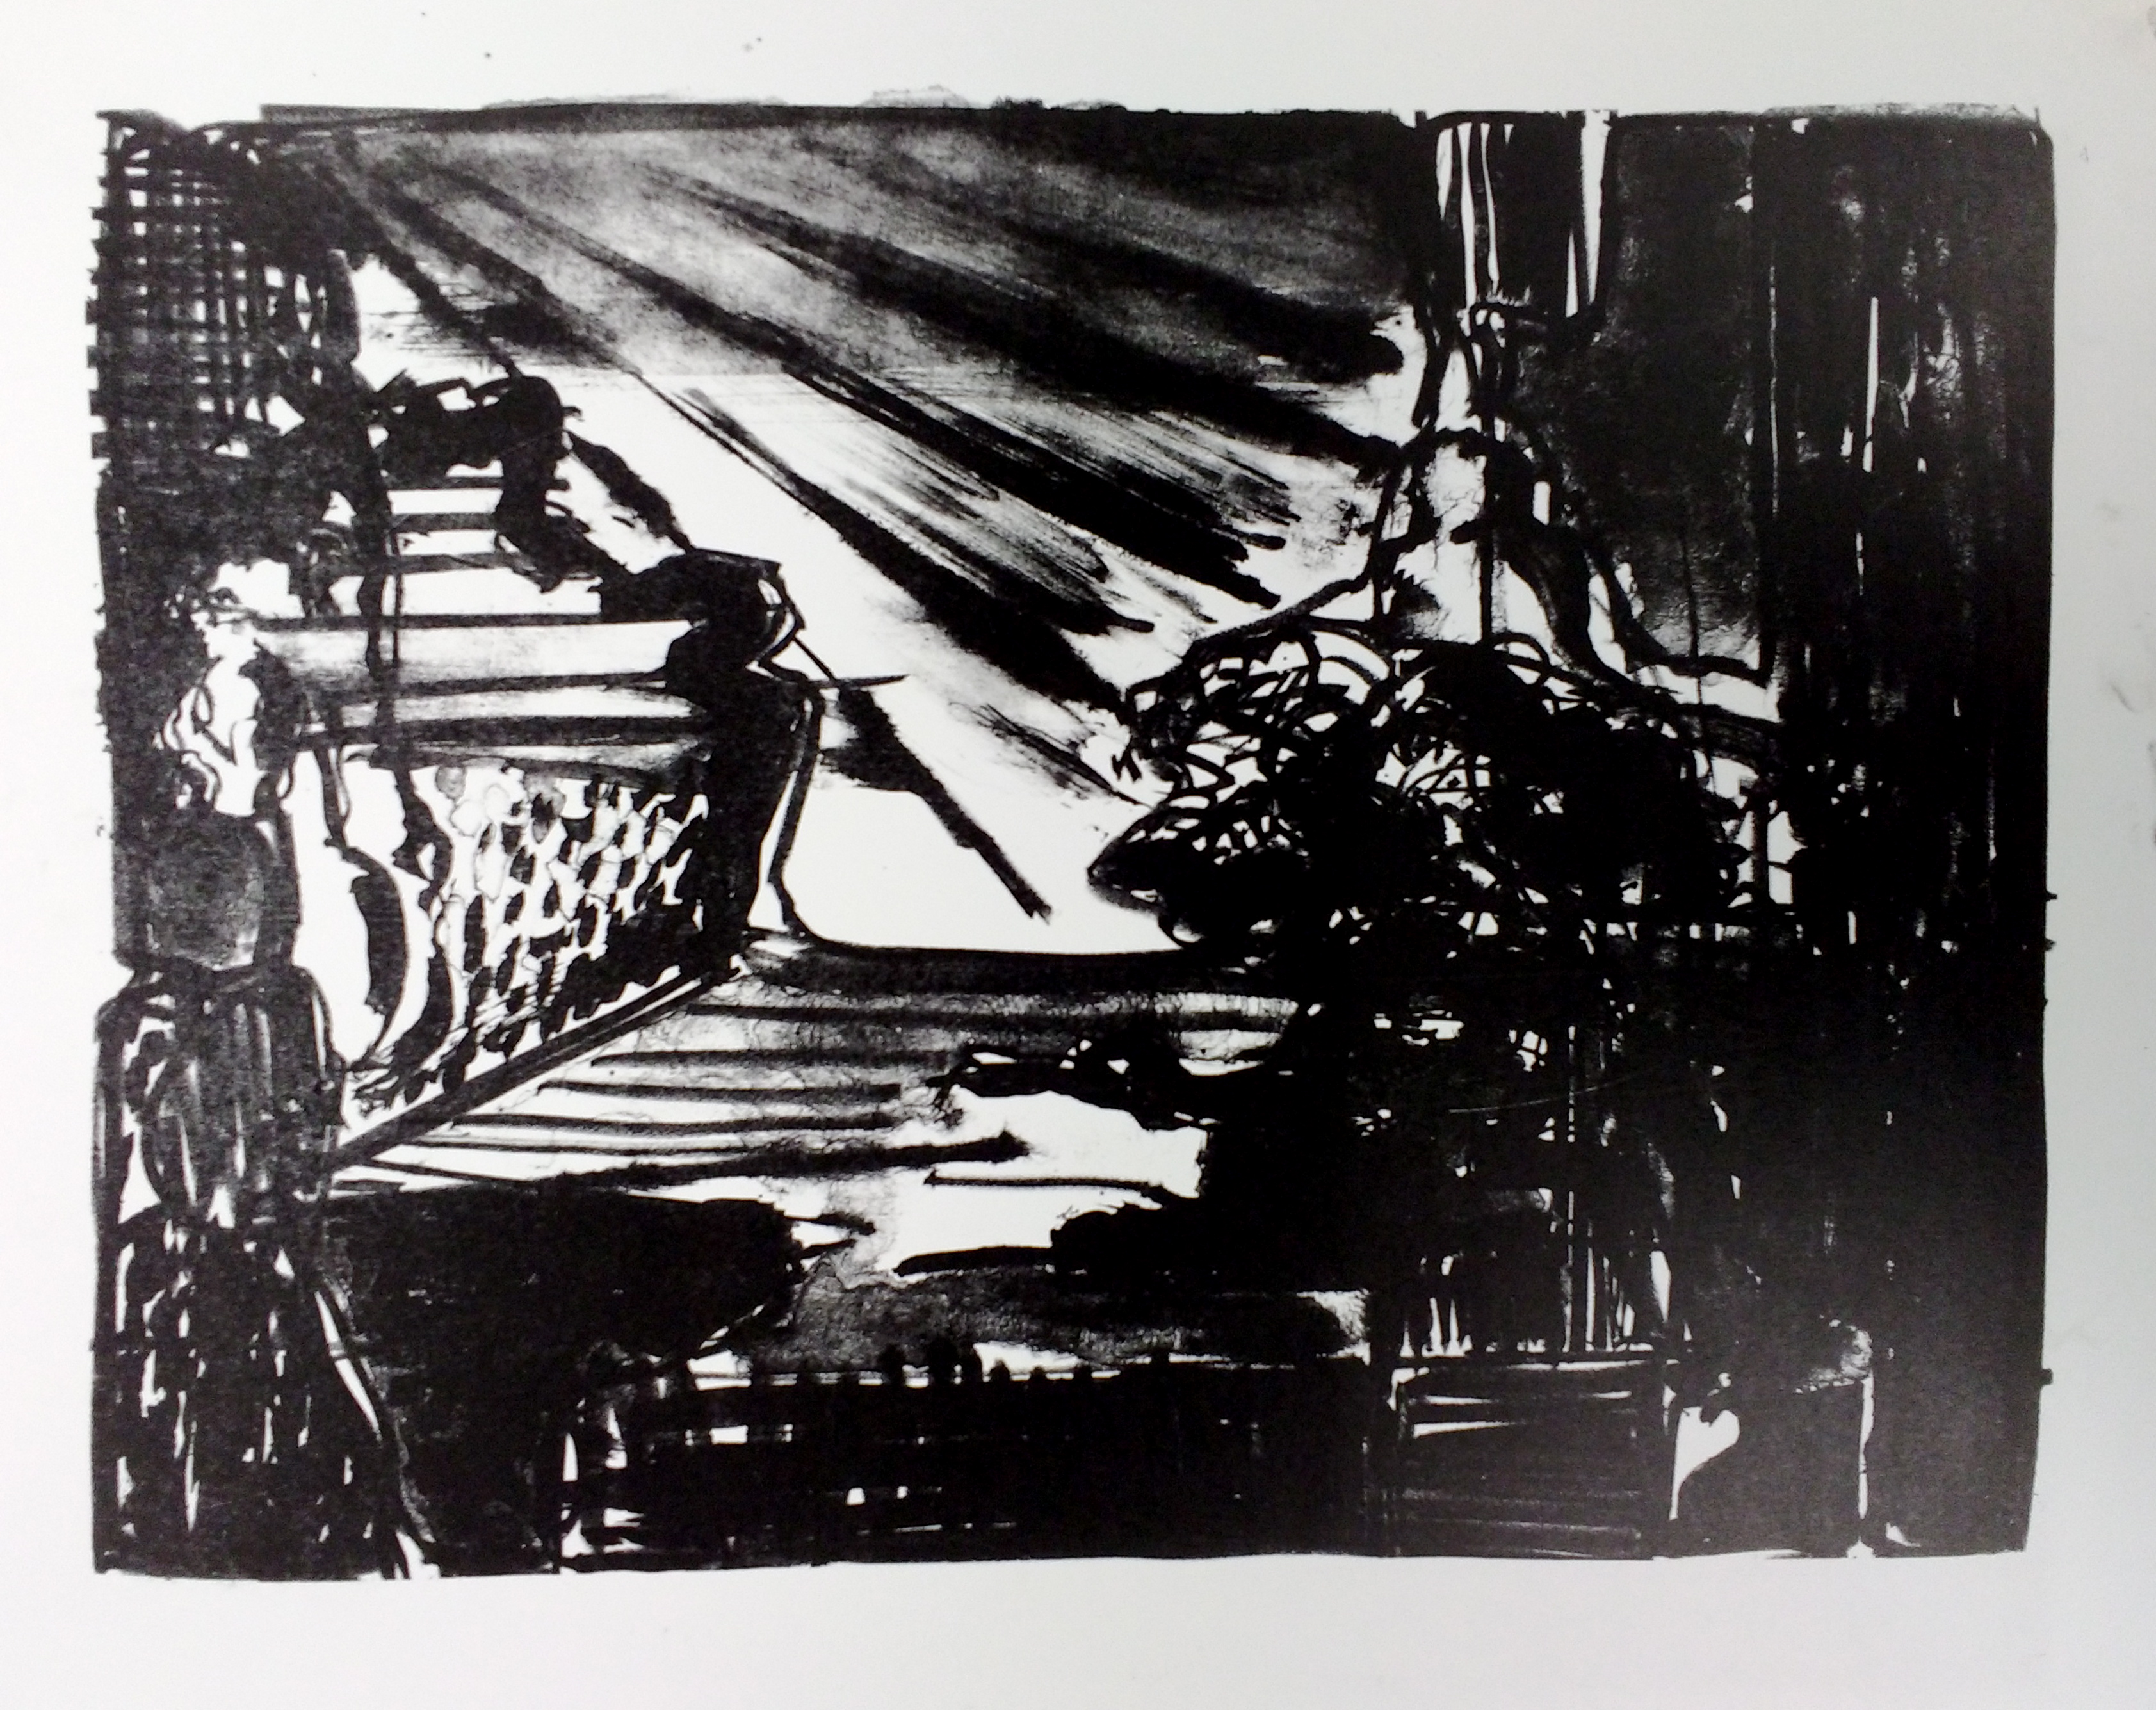 Untitled Litho 1, Lithograph